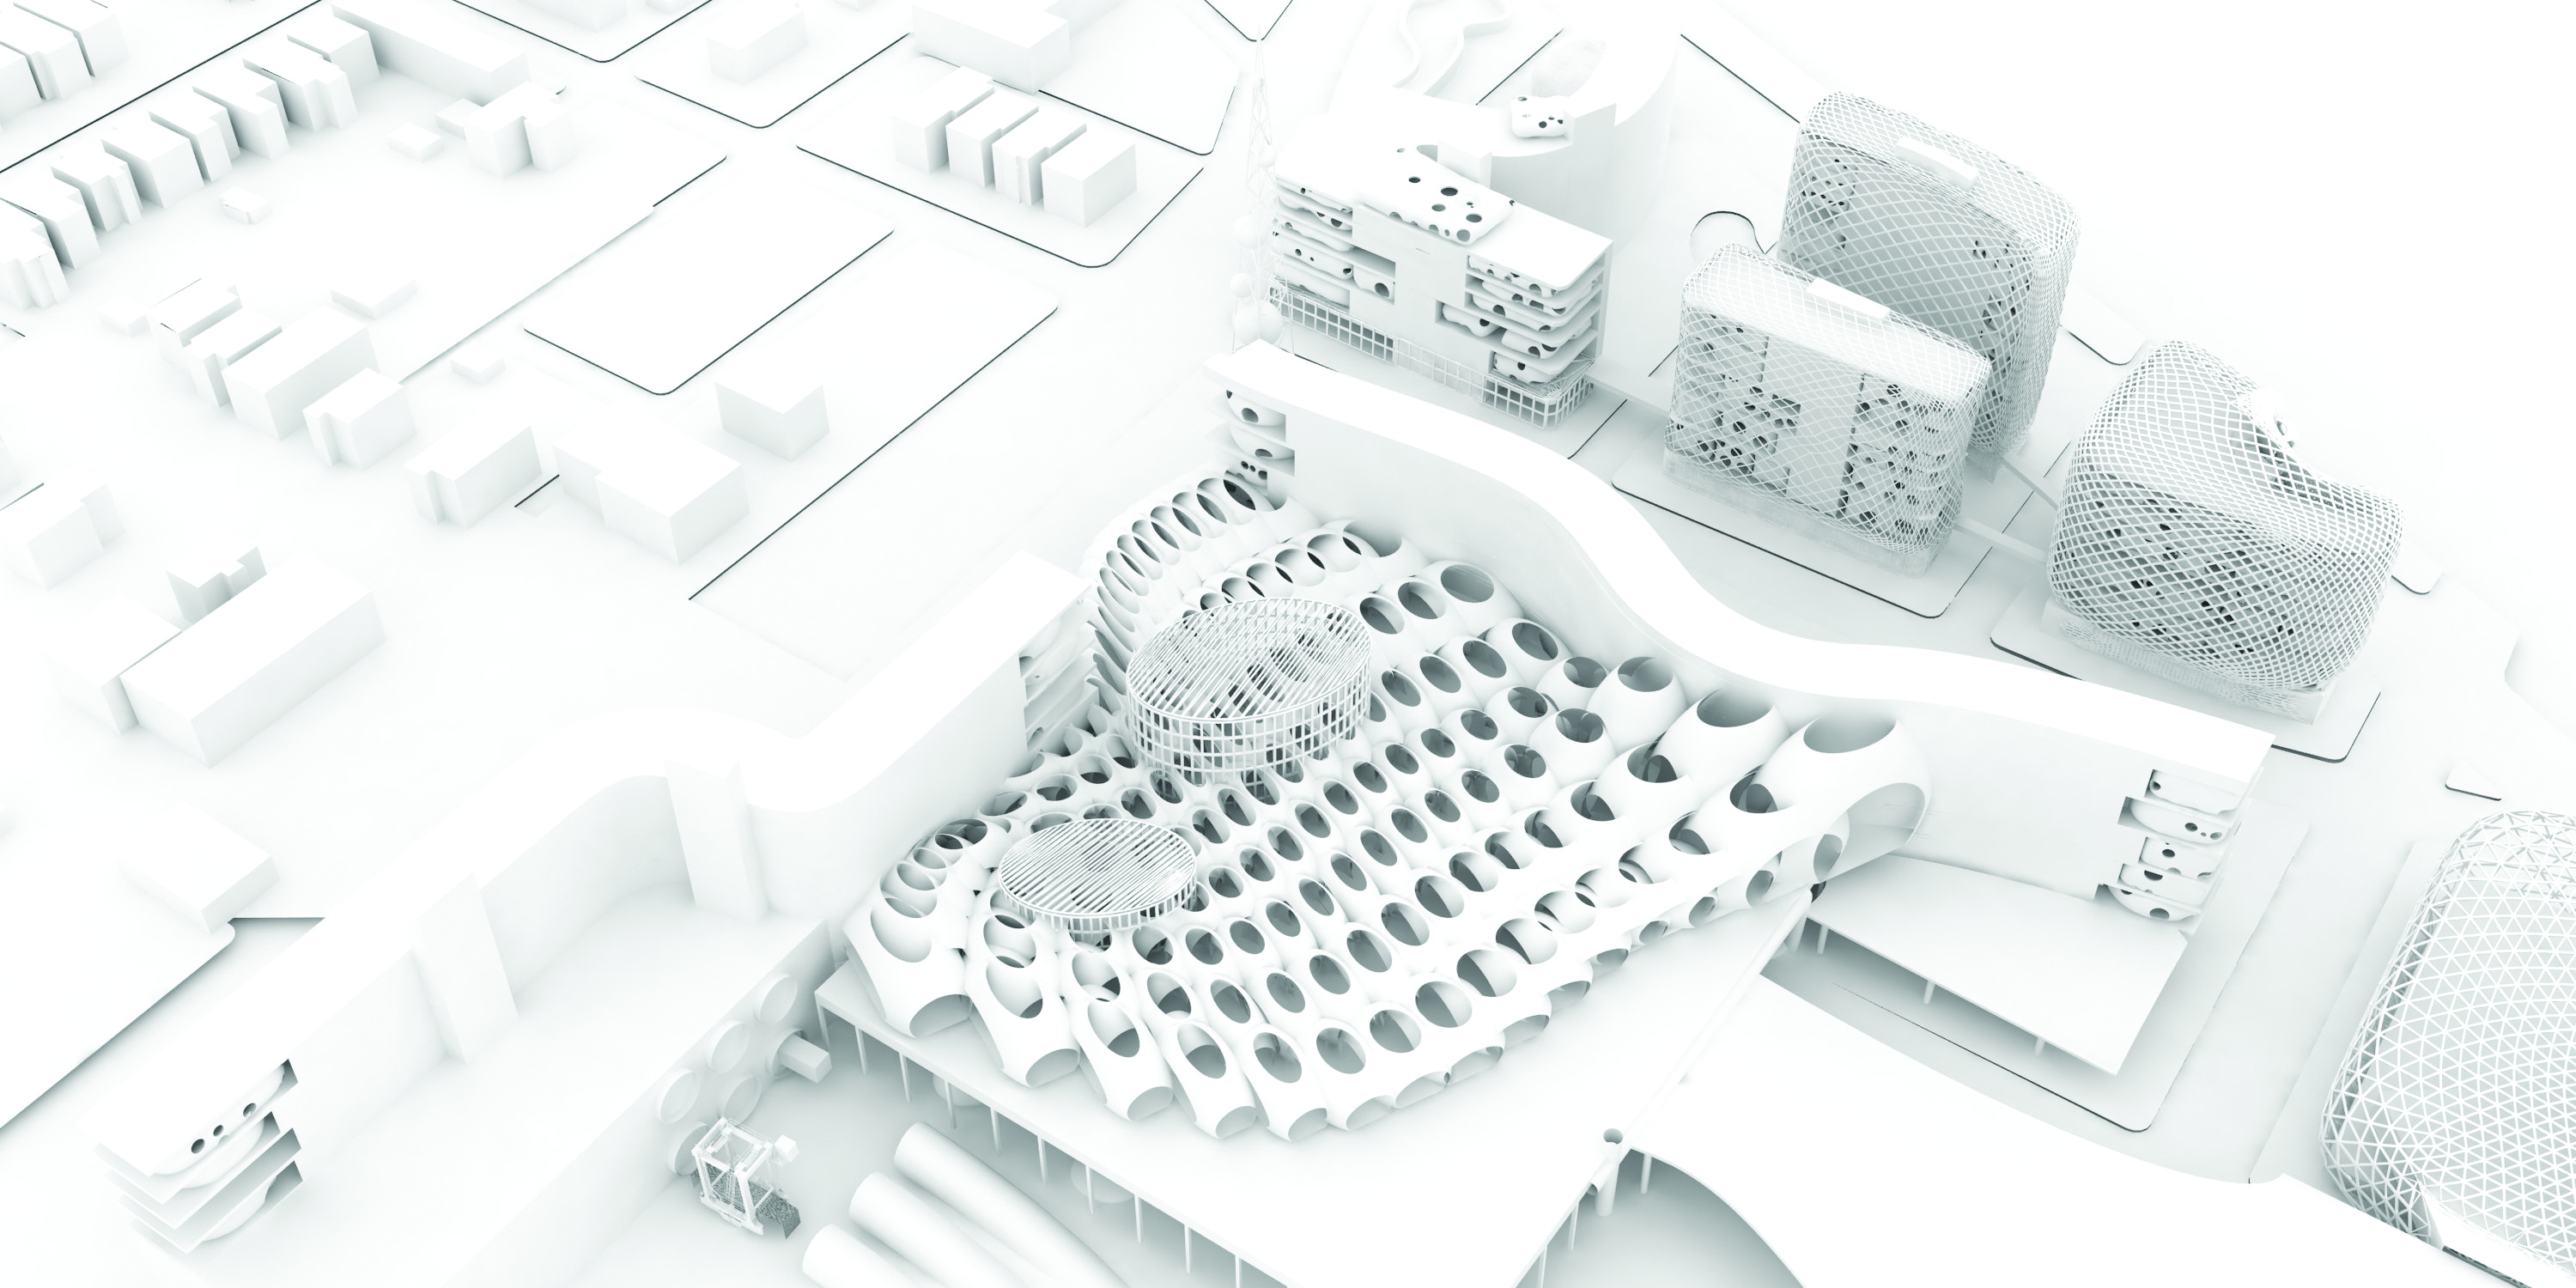 A(n) Office, Promised Land Air, 2016. Rendered aerial perspective of industrial studios with pneumatic freight, housing, air-purification network, and a Canadian consulate. Speculative project for Mexicantown/Southwest Detroit seen in The Architectural Imagination, an exhibition for the United States Pavilion, Biennale Architettura 2016, Venice. Courtesy A(n) Office.